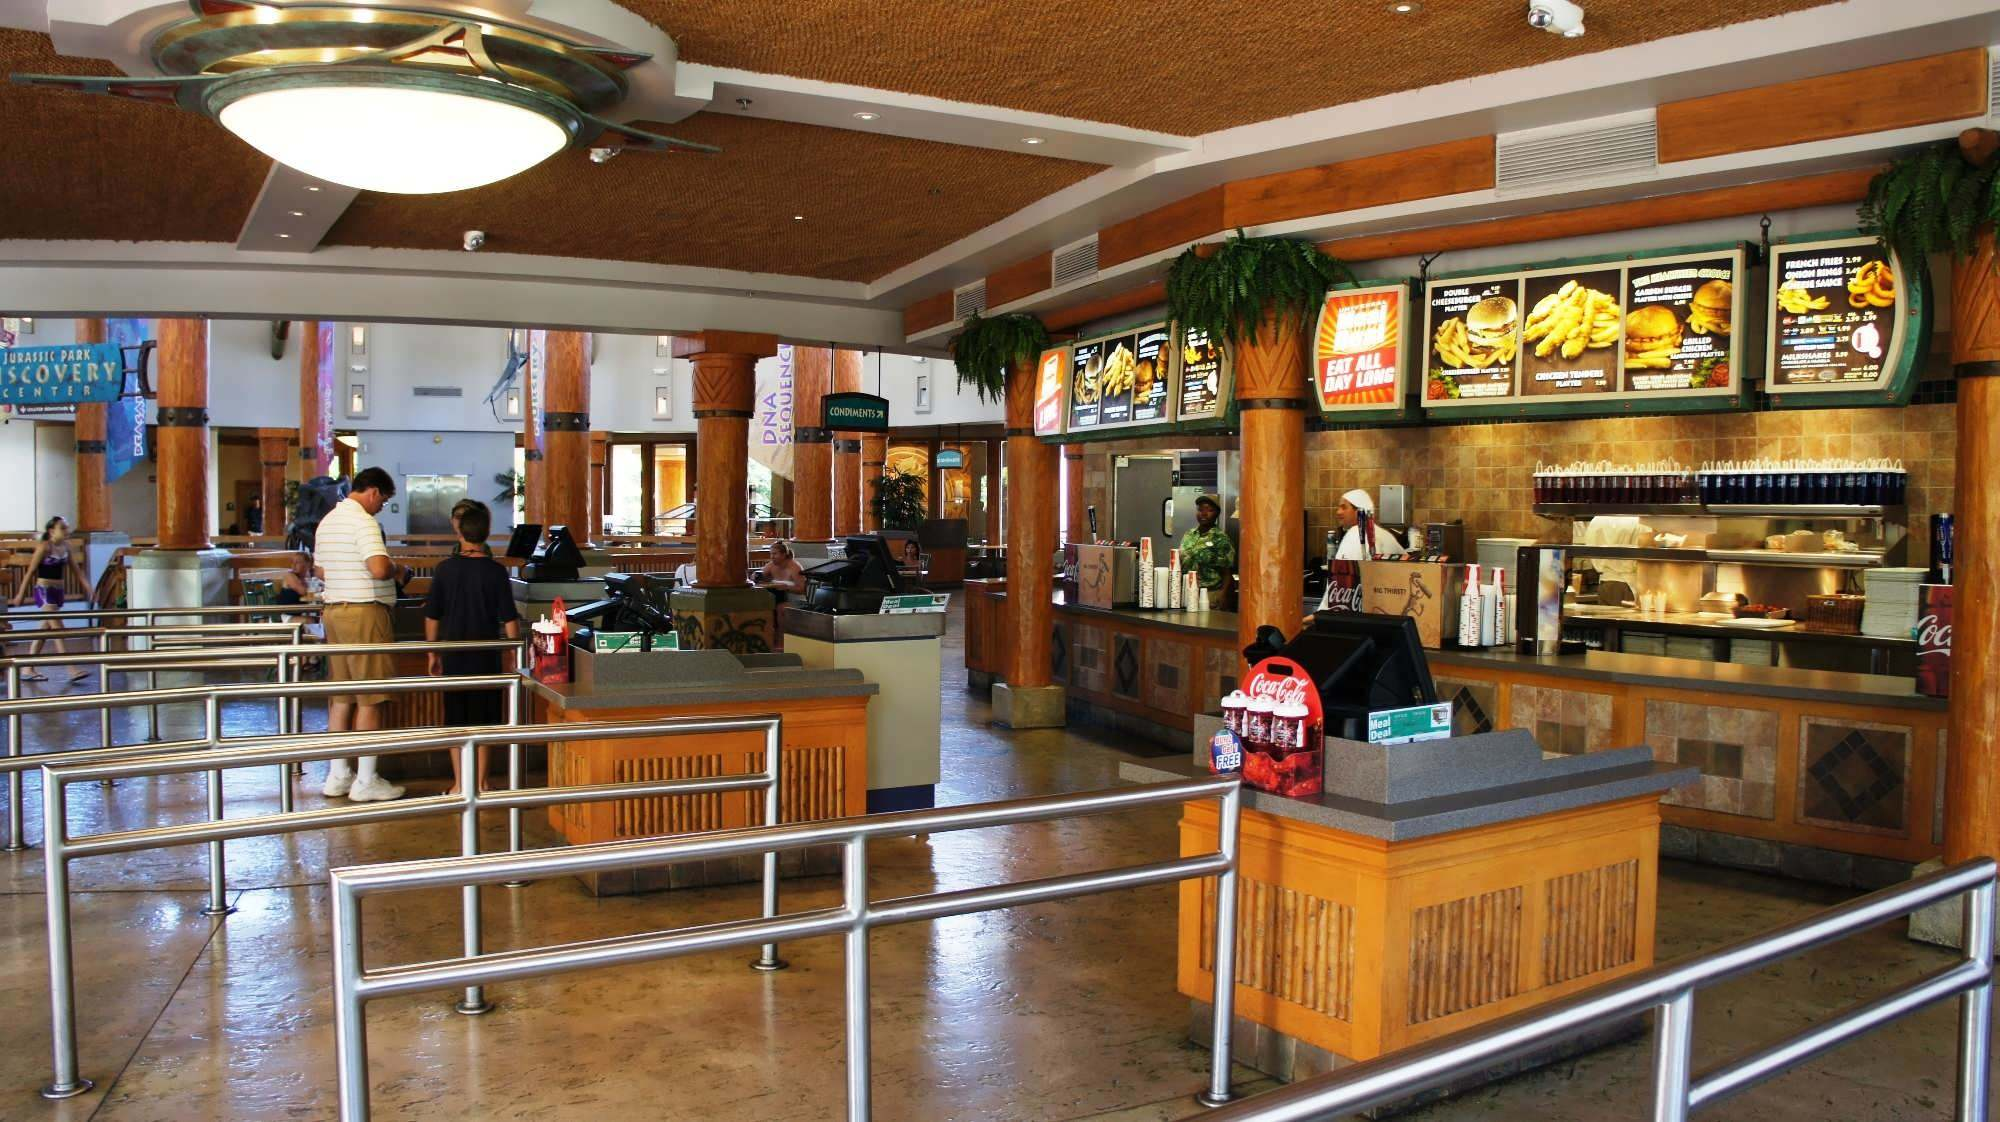 How to use Universal Orlando's new mobile order